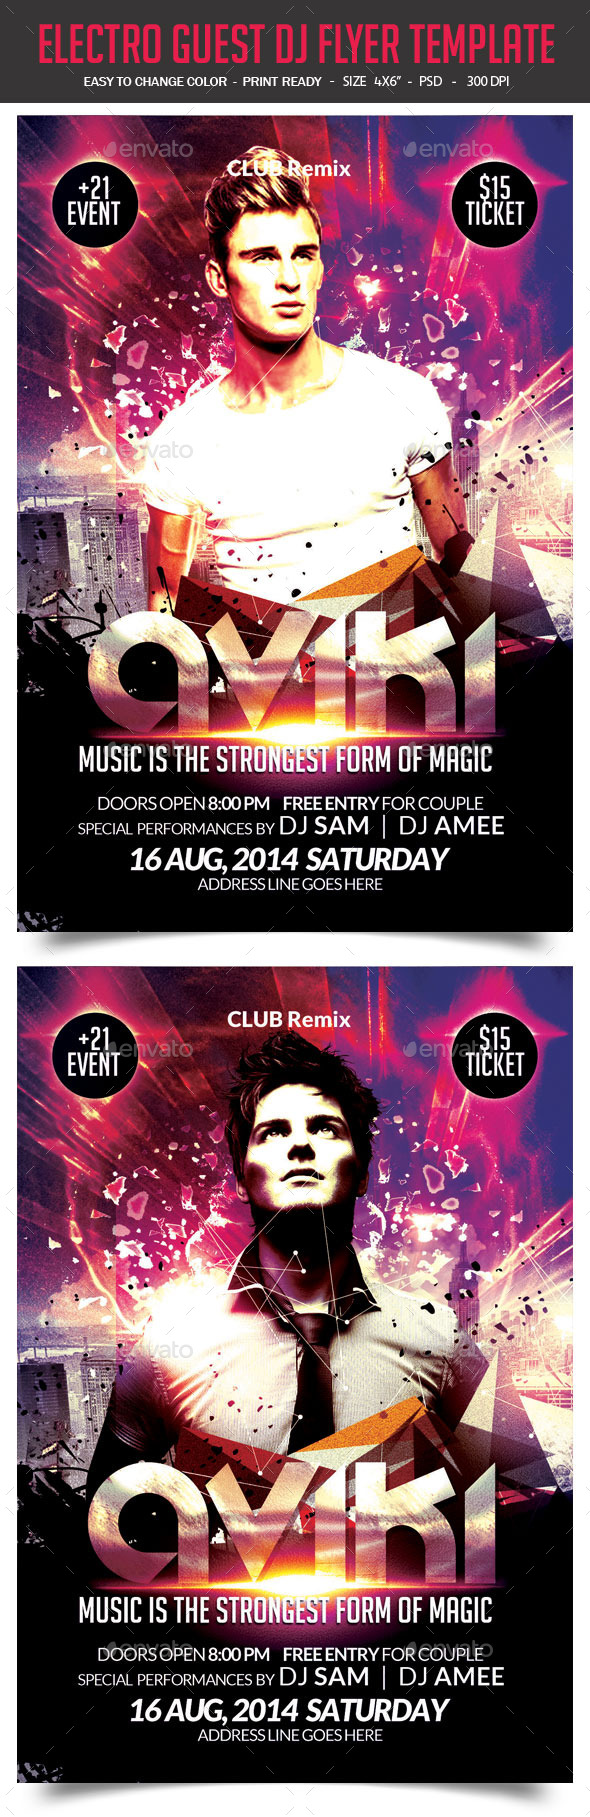 Electro Guest DJ Flyer Template   Flyer template, Template and Font logo